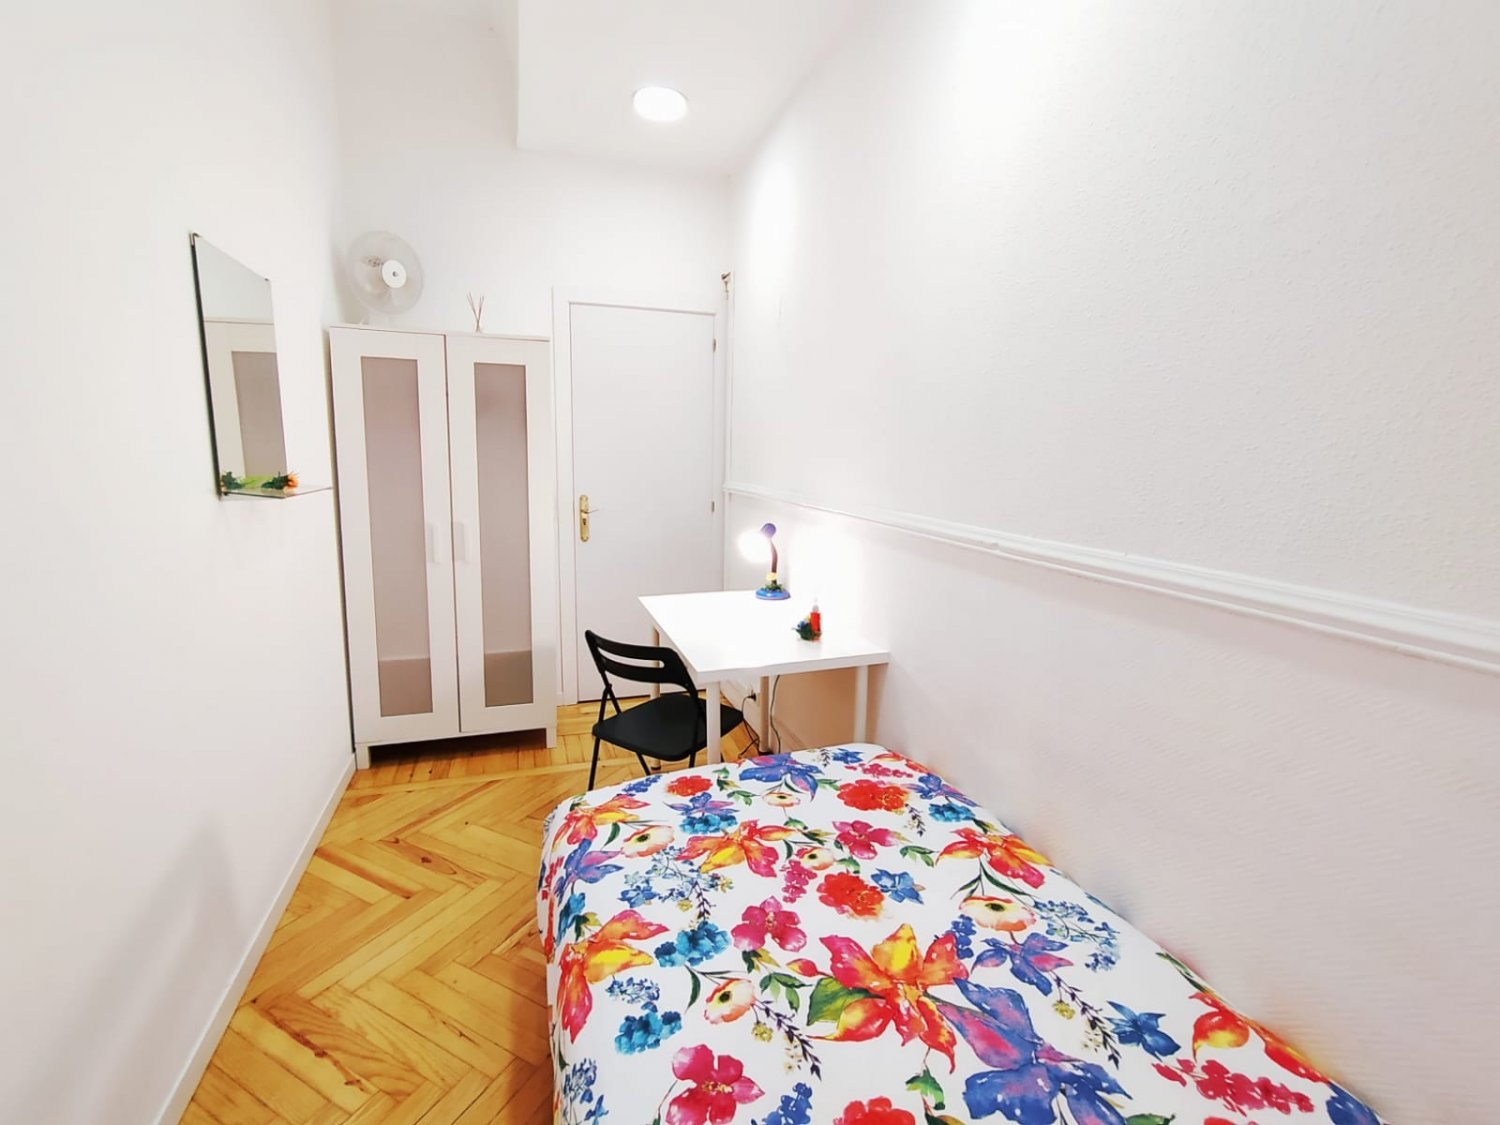 Rooms to rent in Madrid – Arguelles – ARGB12